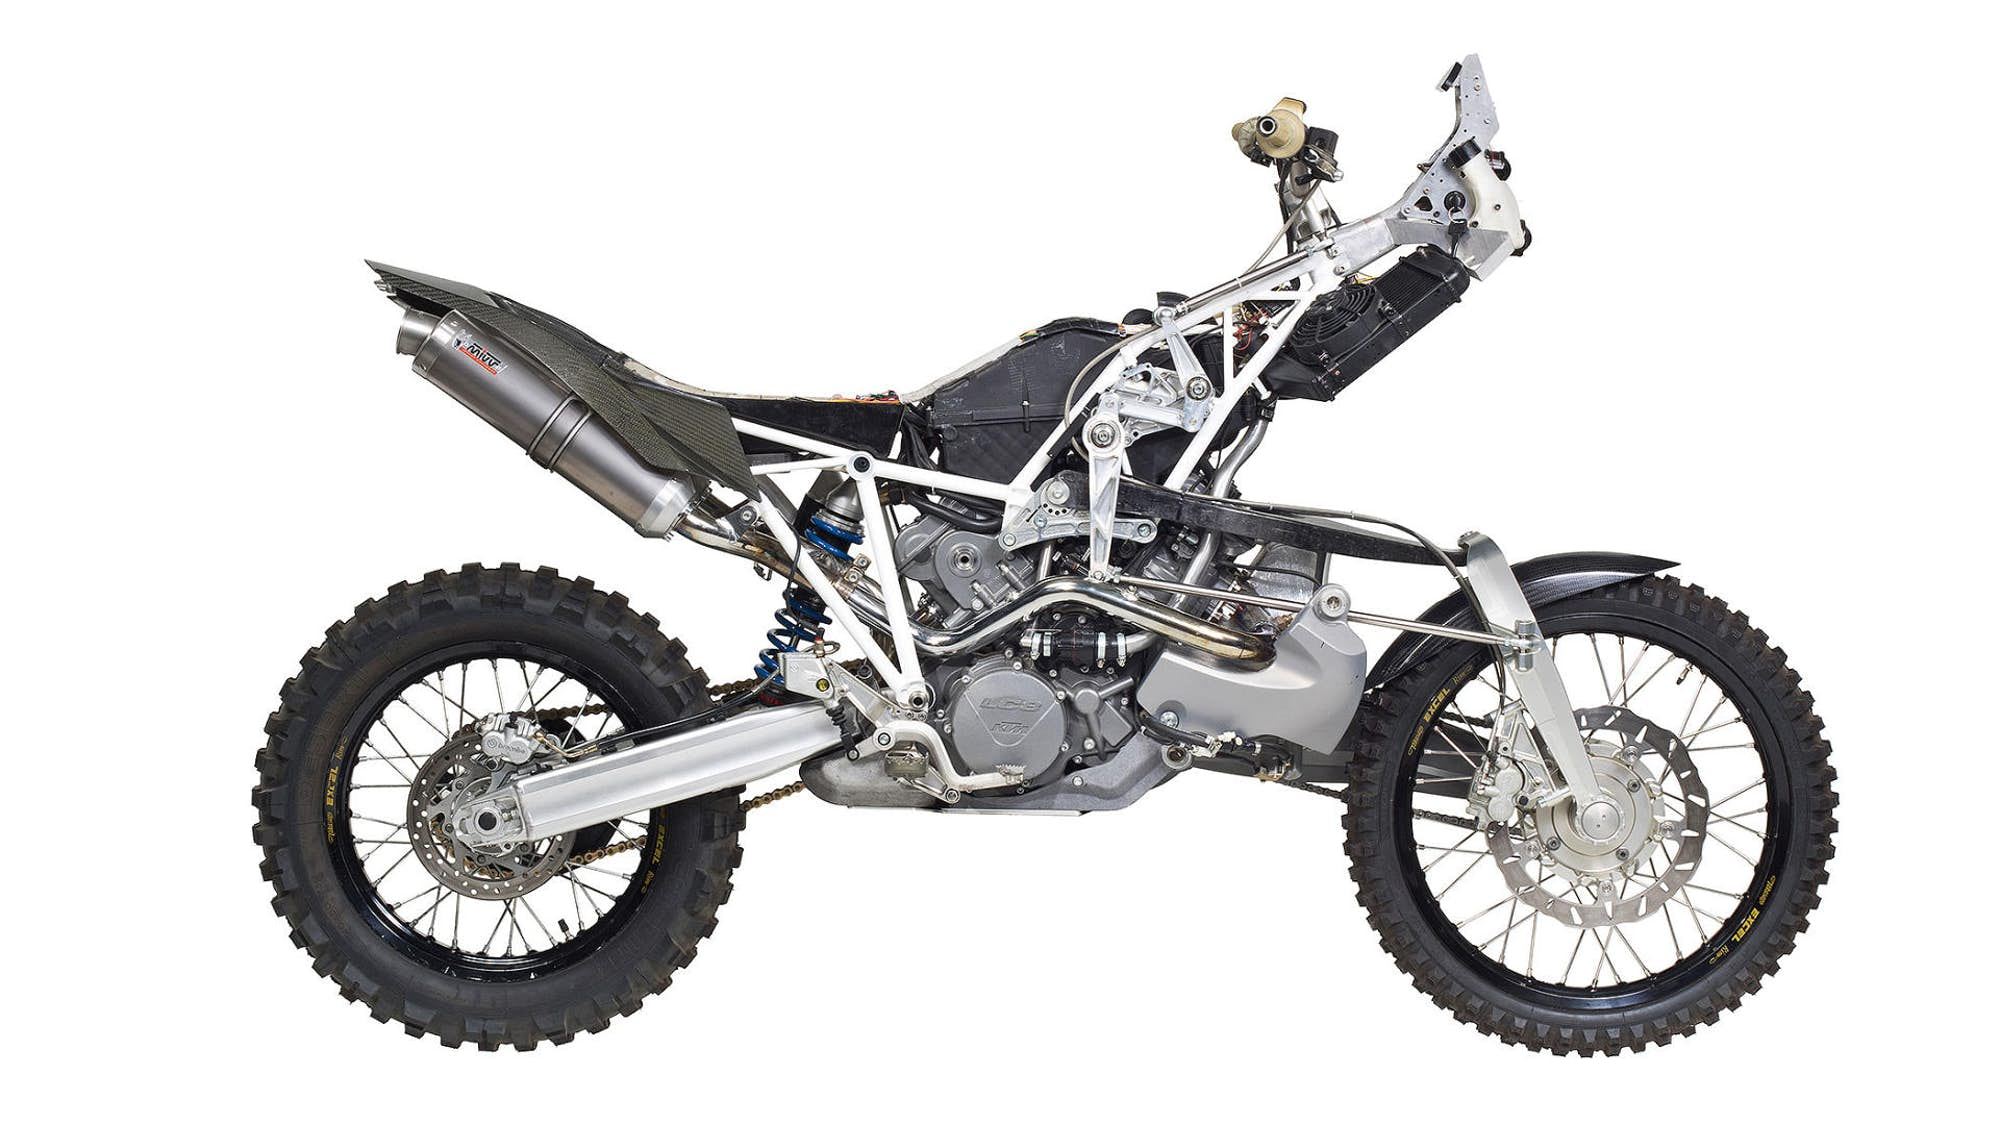 a home built kit to convert the ktm 990 adventure to two. Black Bedroom Furniture Sets. Home Design Ideas